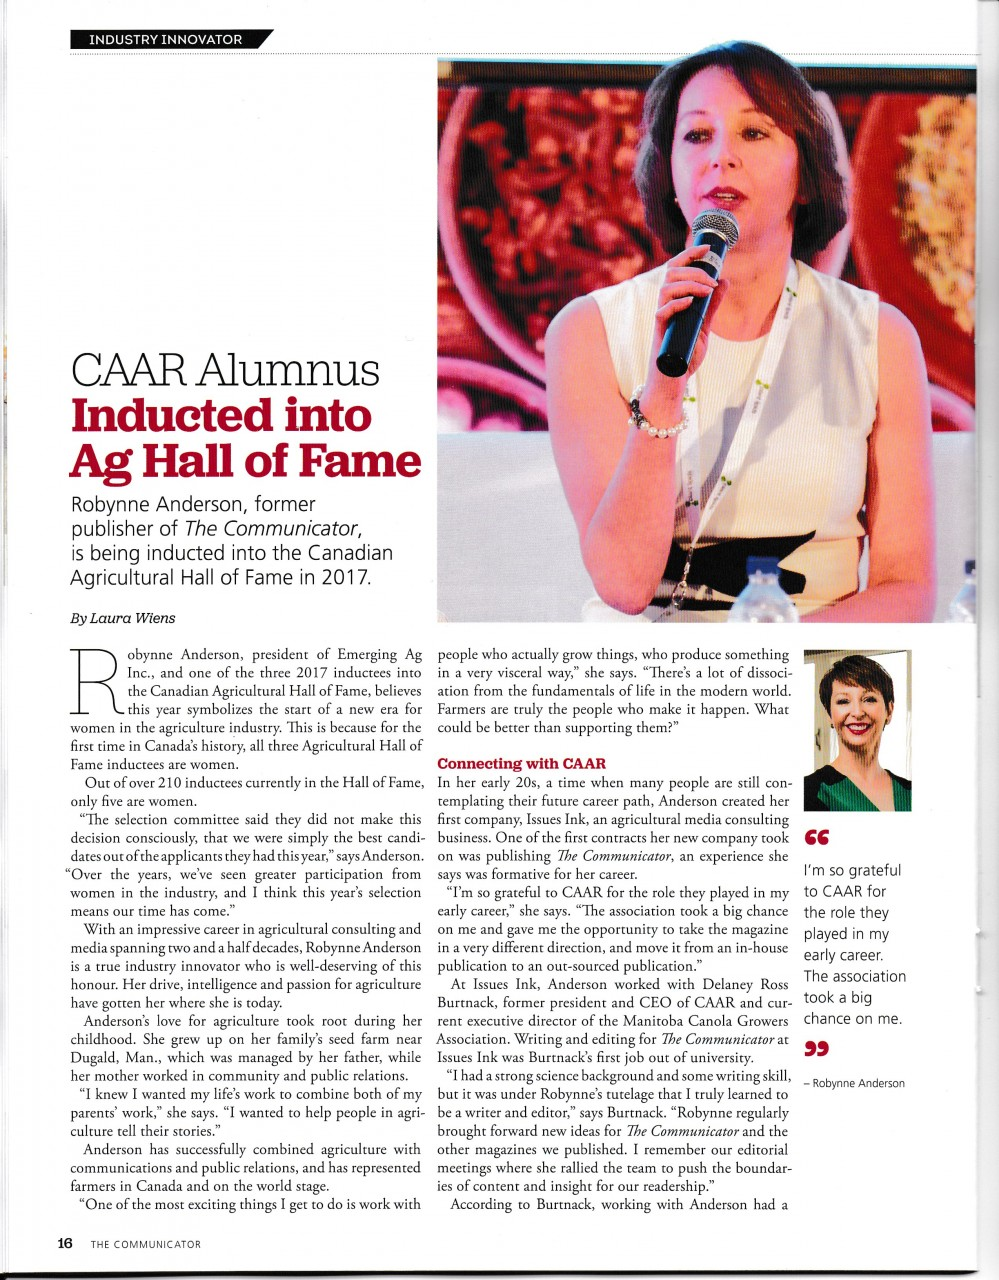 The Communicator highlights induction into Ag Hall of Fame